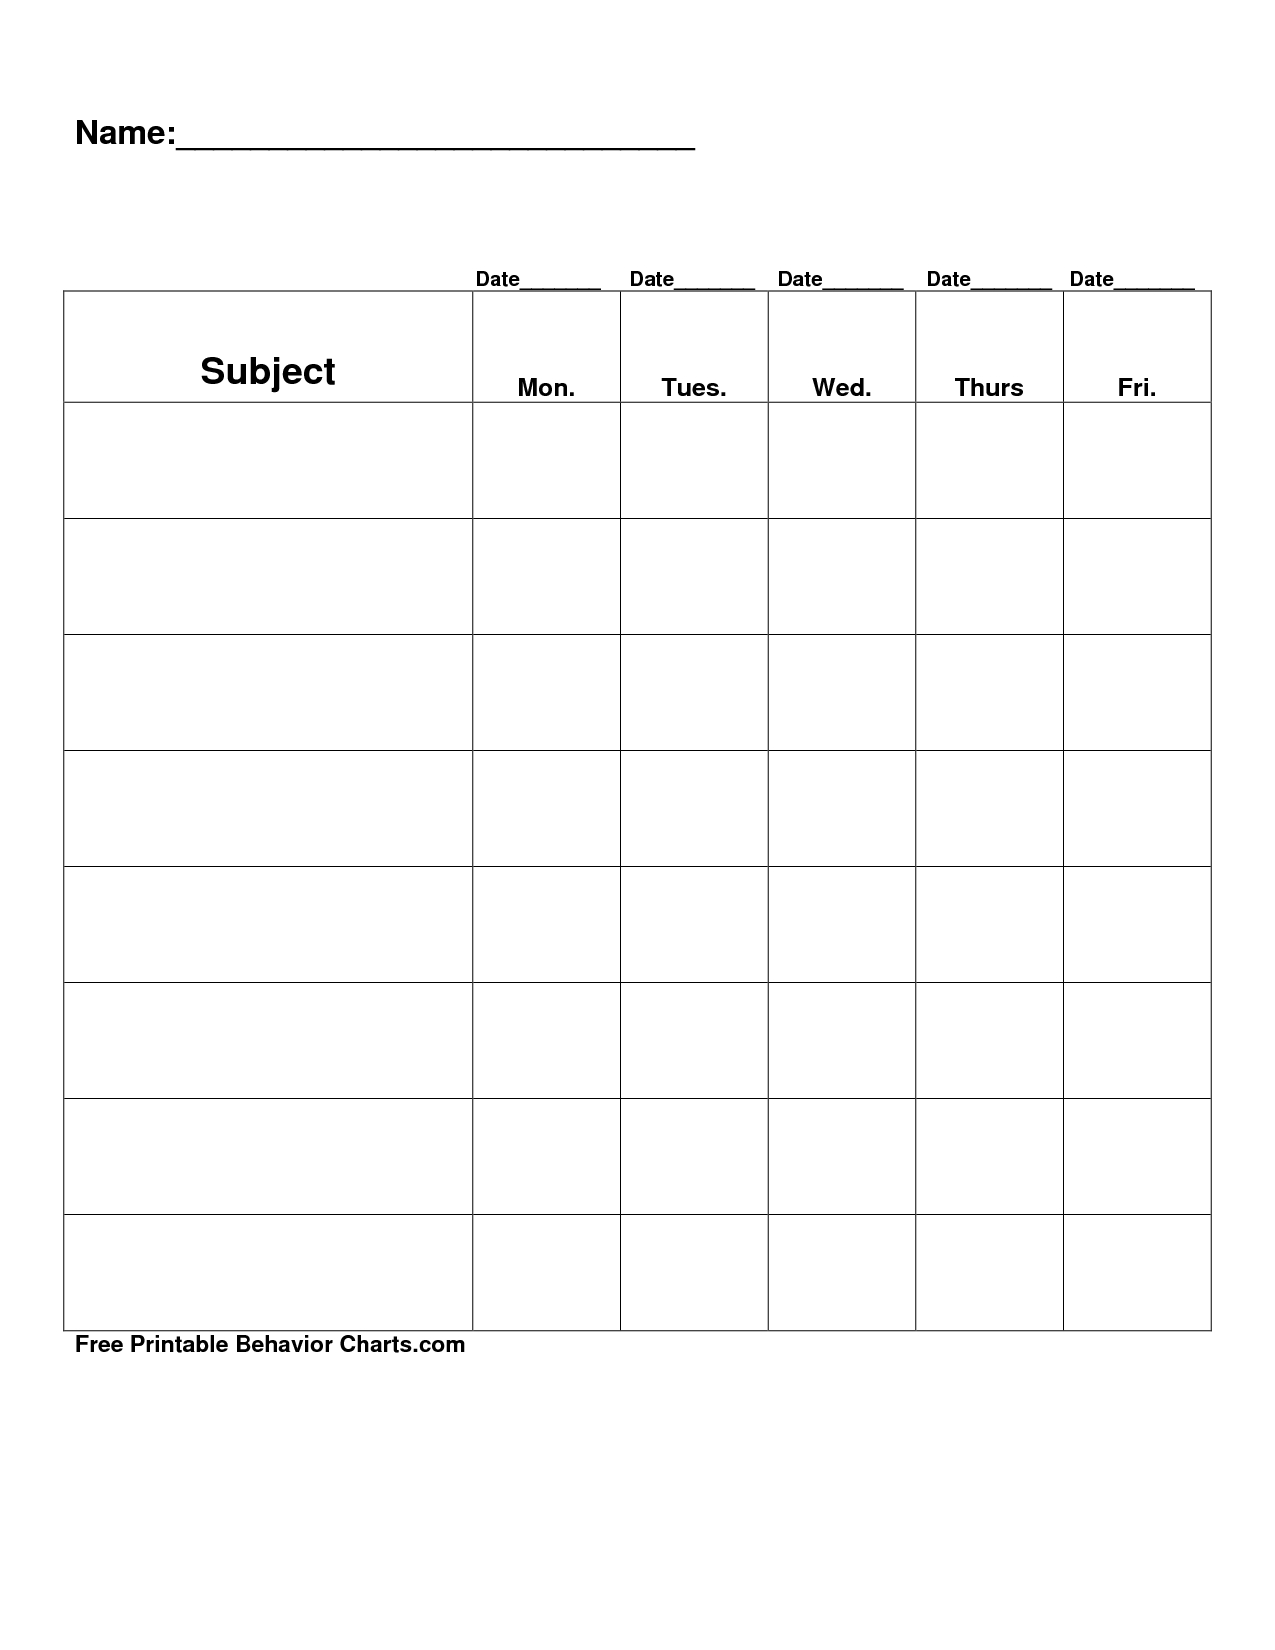 Free Printable Blank Charts | Free Printable Behavior Charts Com - Free Printable Behavior Charts For Elementary Students